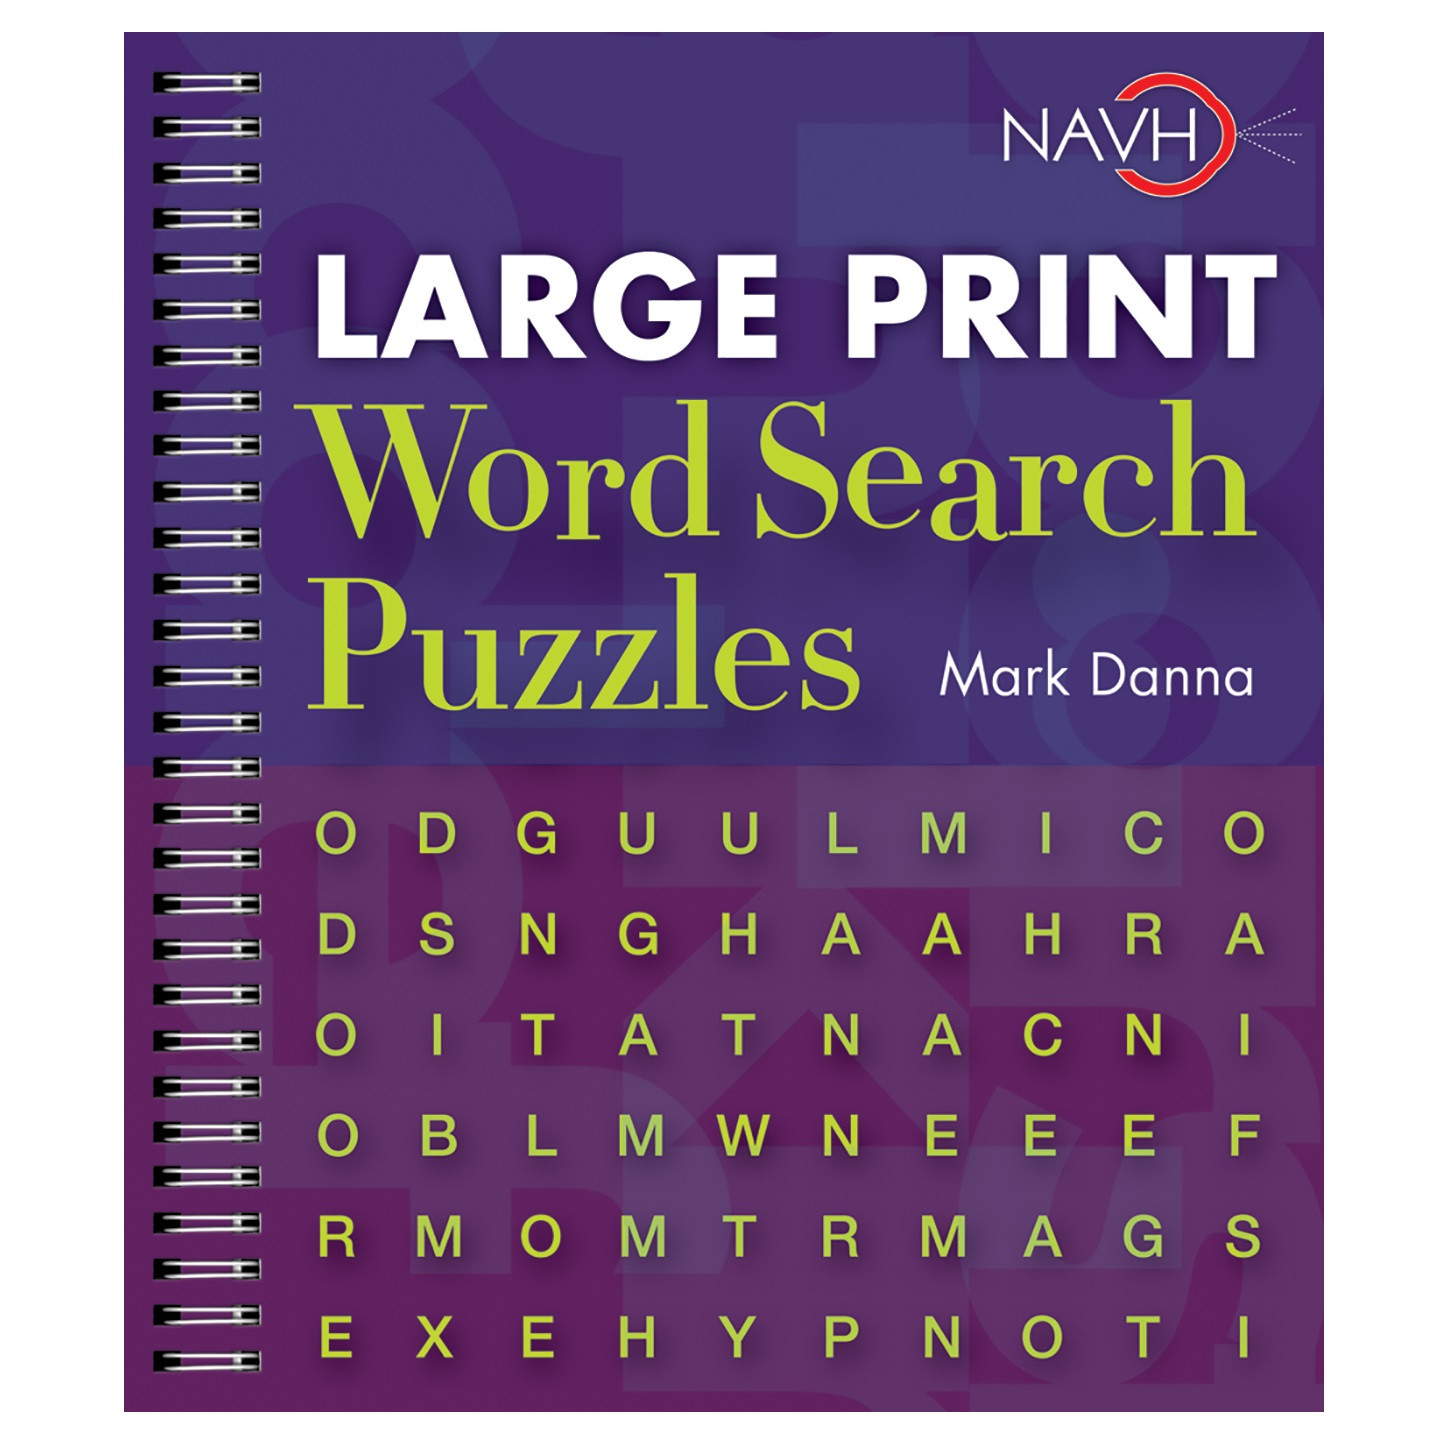 Large Print Word Search Puzzle Book - Puzzle Print Uk